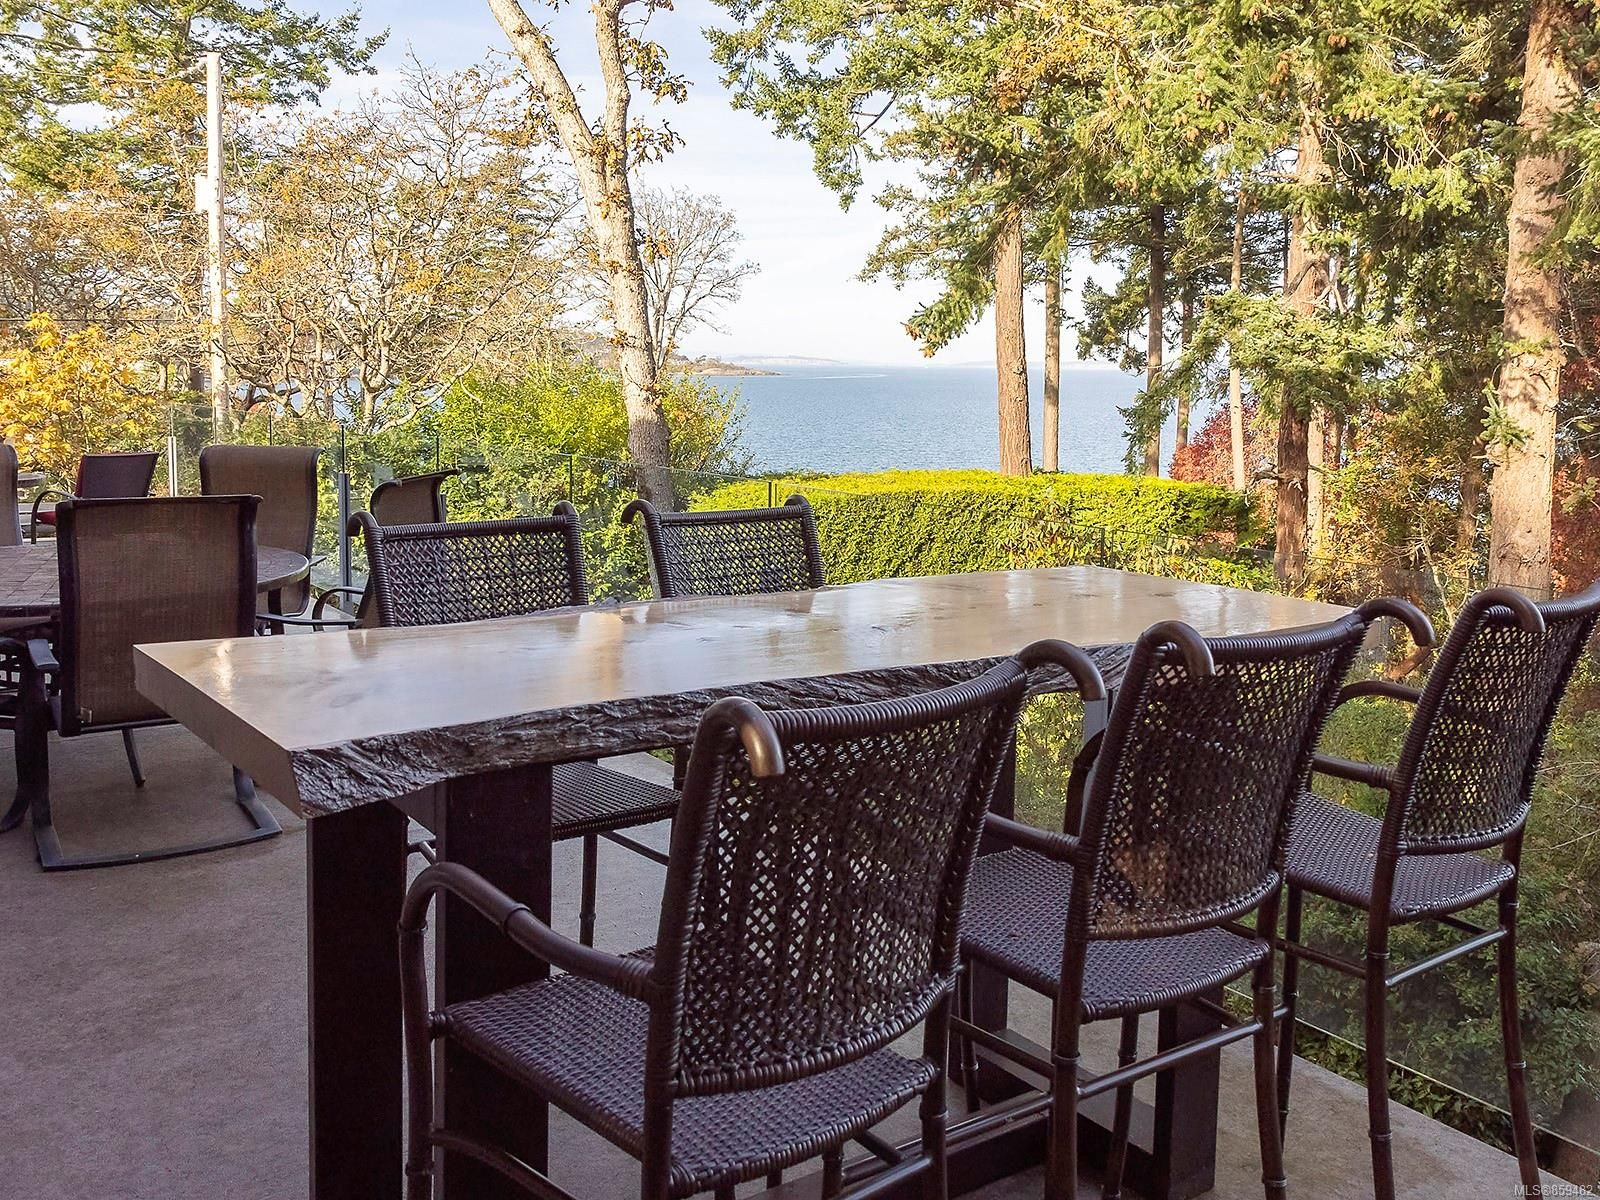 Photo 15: Photos: 4086 Monarch Pl in : SE Arbutus House for sale (Saanich East)  : MLS®# 859482